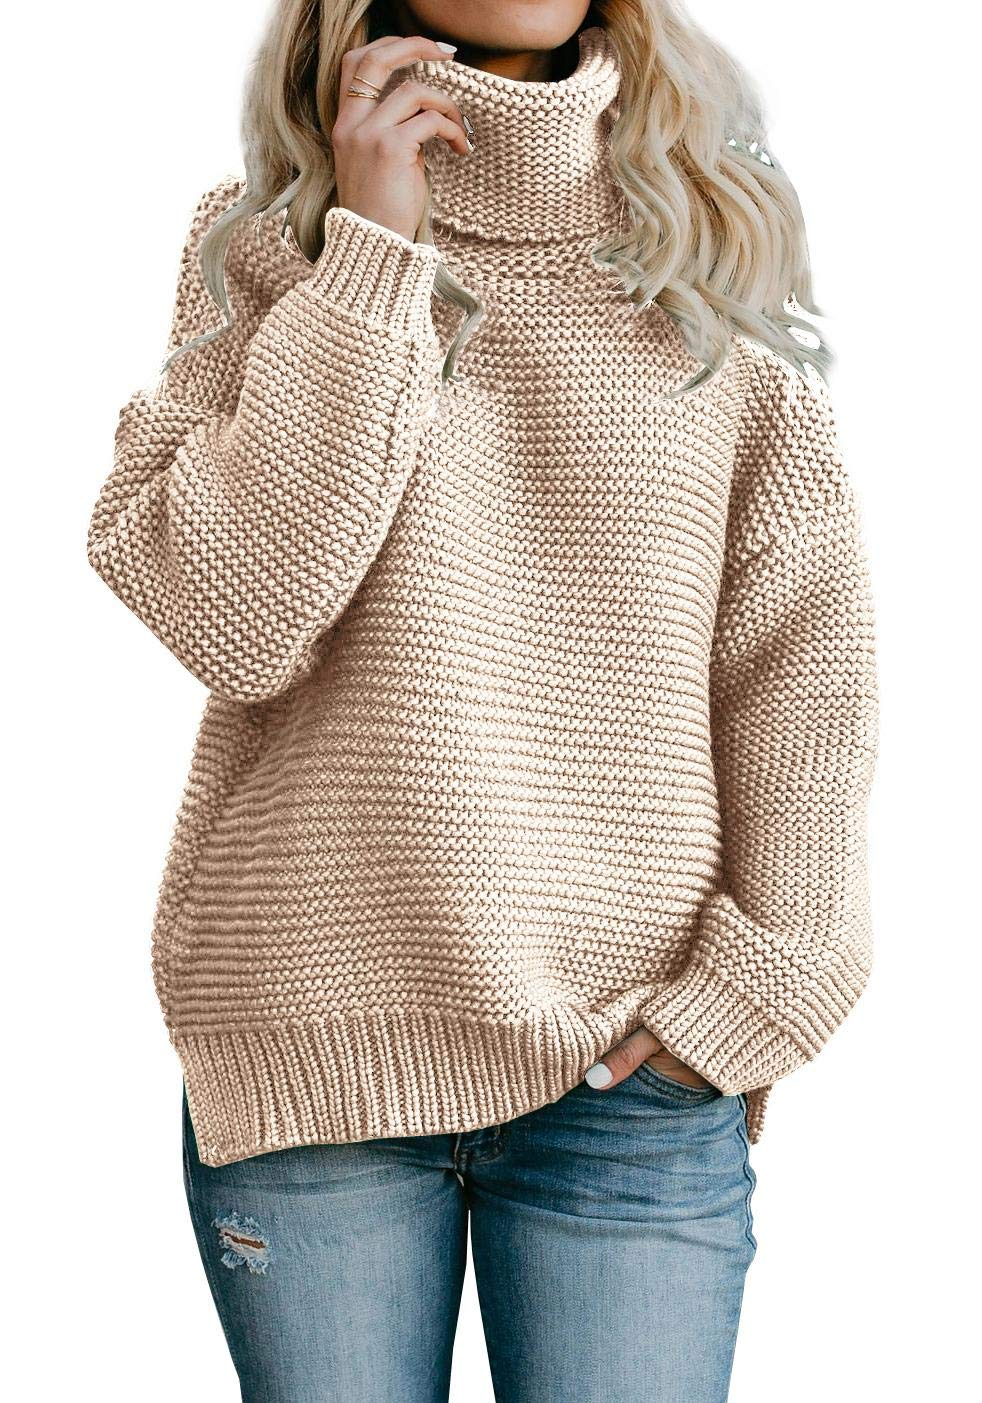 Yacooh Womens Pullover Sweaters Turtleneck Oversized Rib Knitted Long Sleeve Warm Sweater